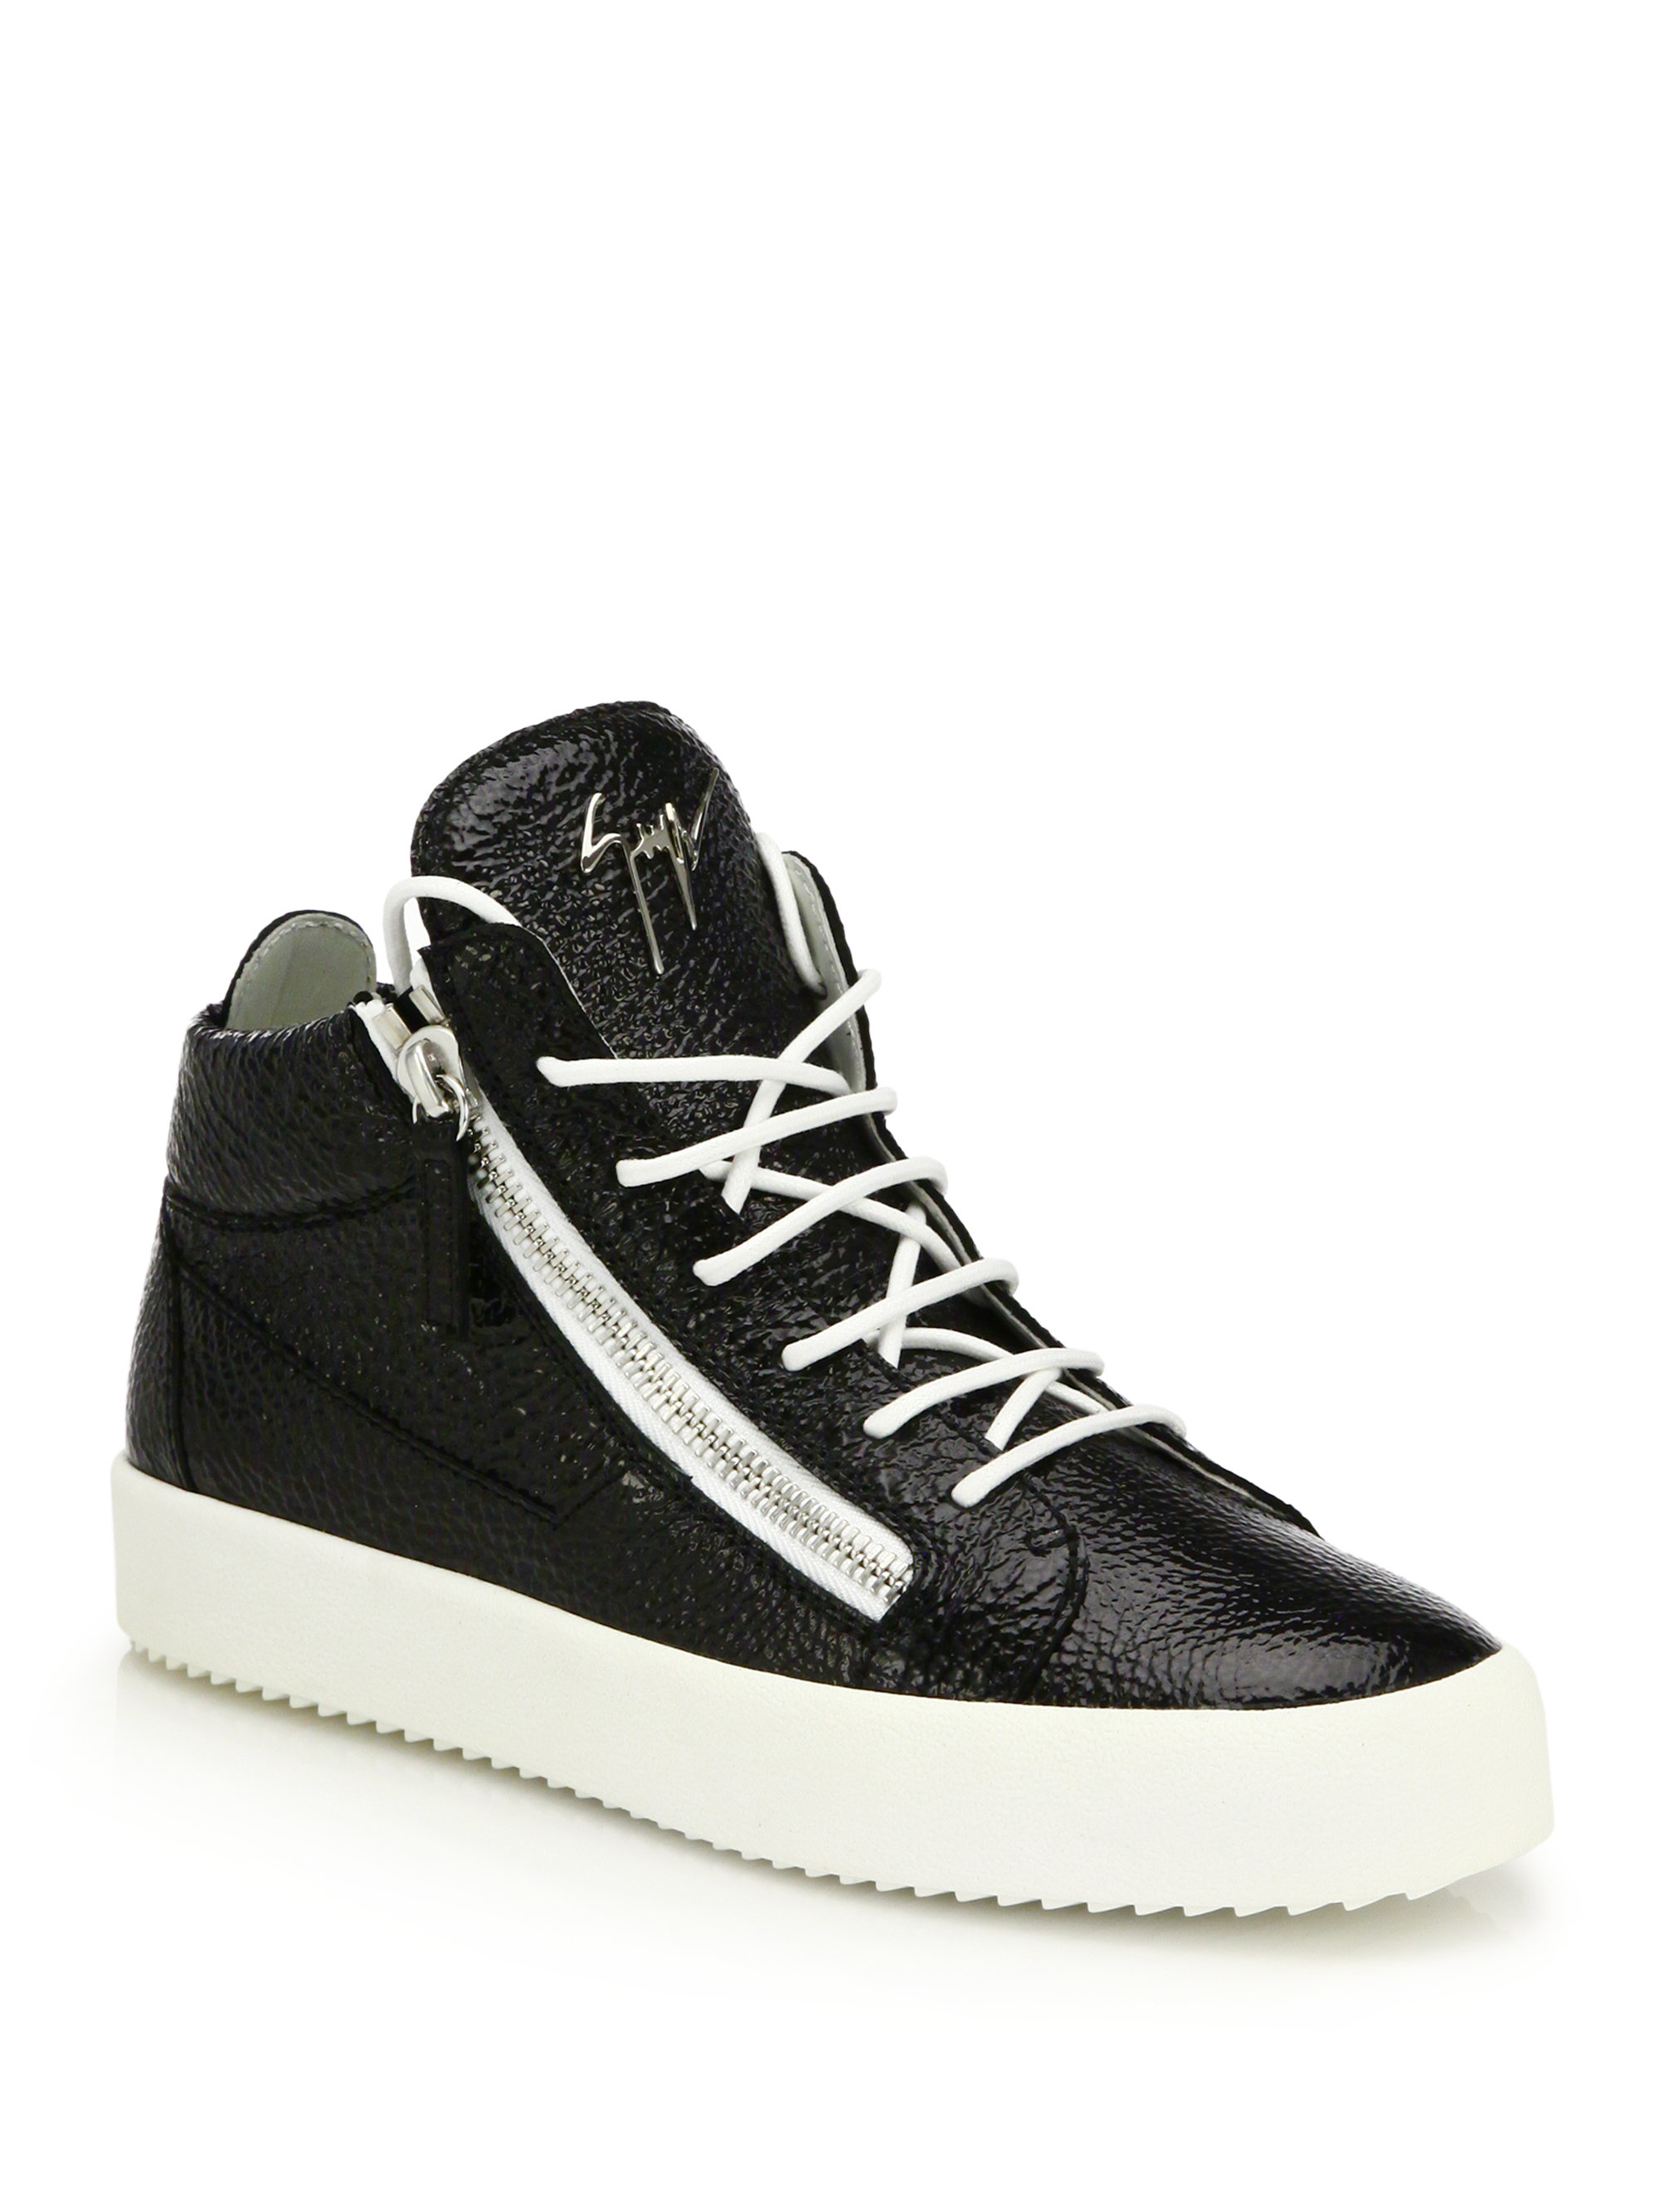 318560b426a08 Lyst - Giuseppe Zanotti Crinkled Leather Double-zip Mid-top Sneakers ...